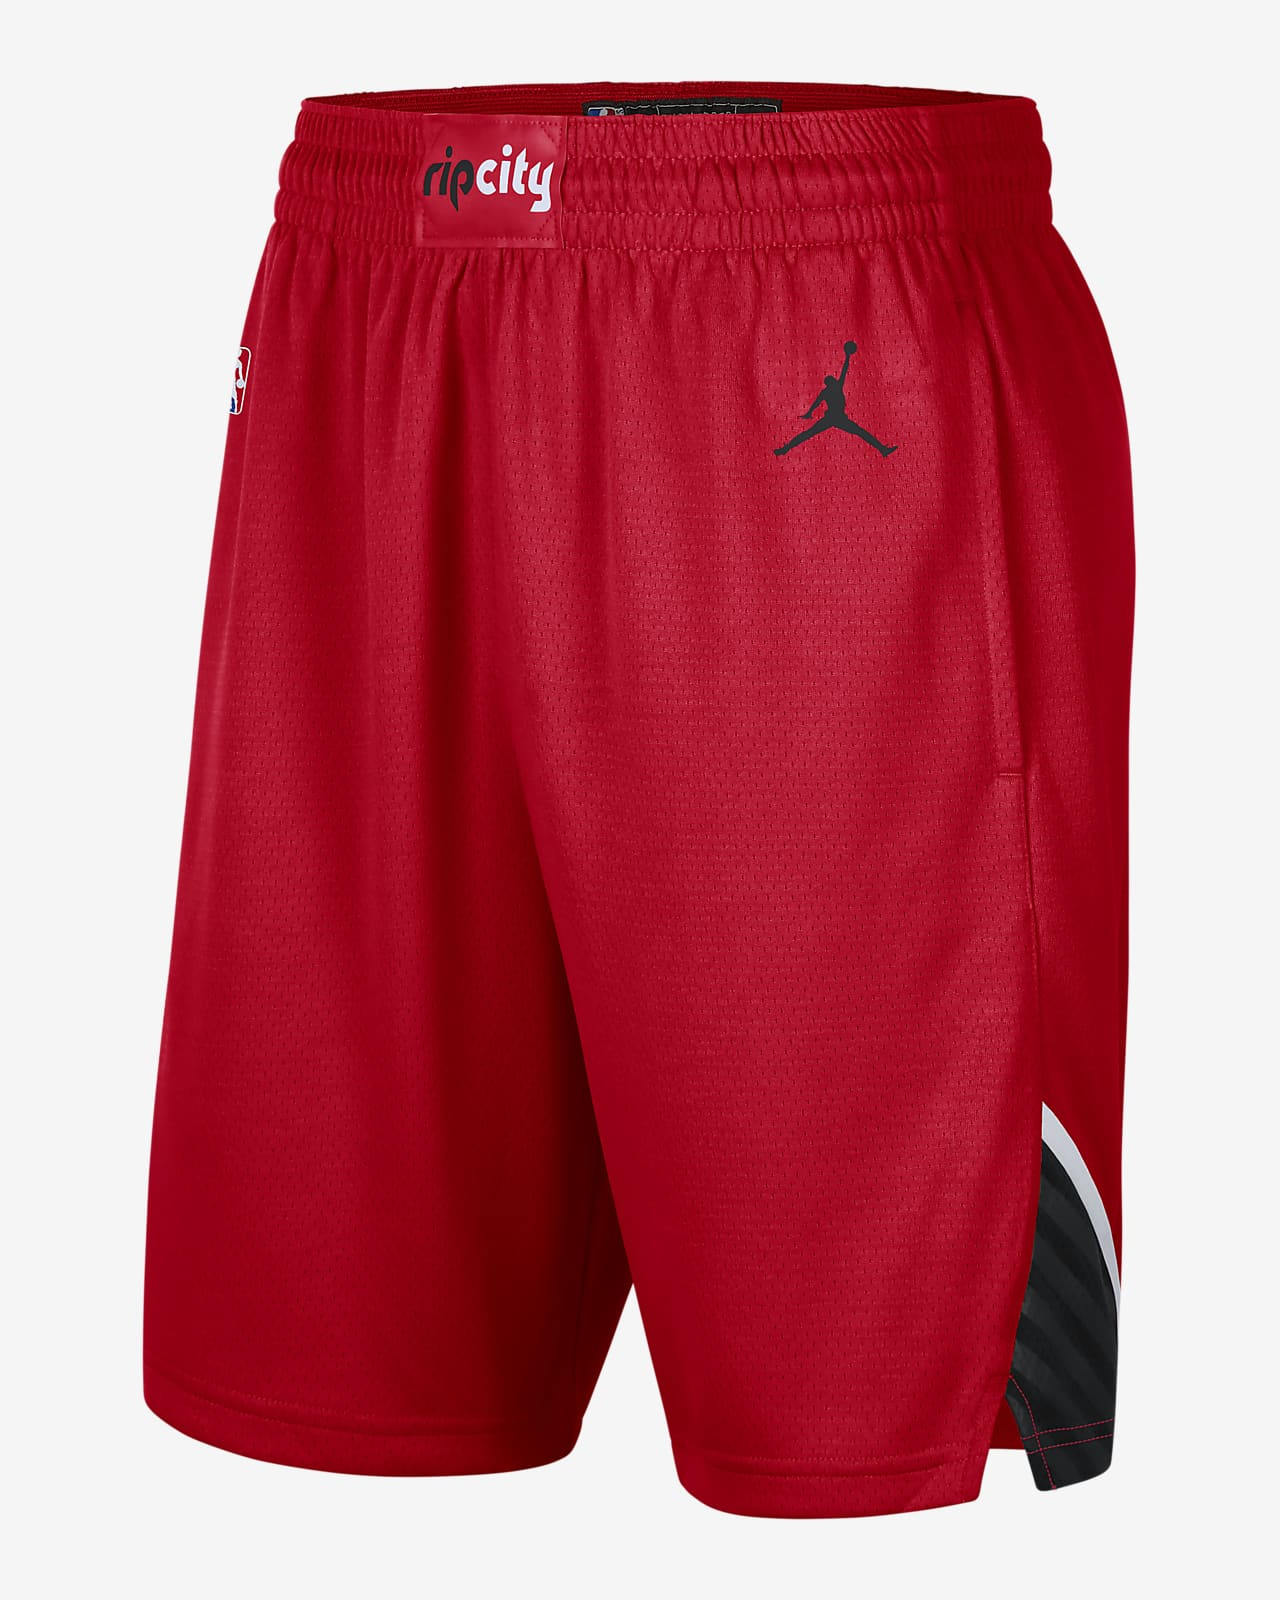 Trail Blazers Statement Edition 2020 Men's Jordan NBA Swingman Shorts